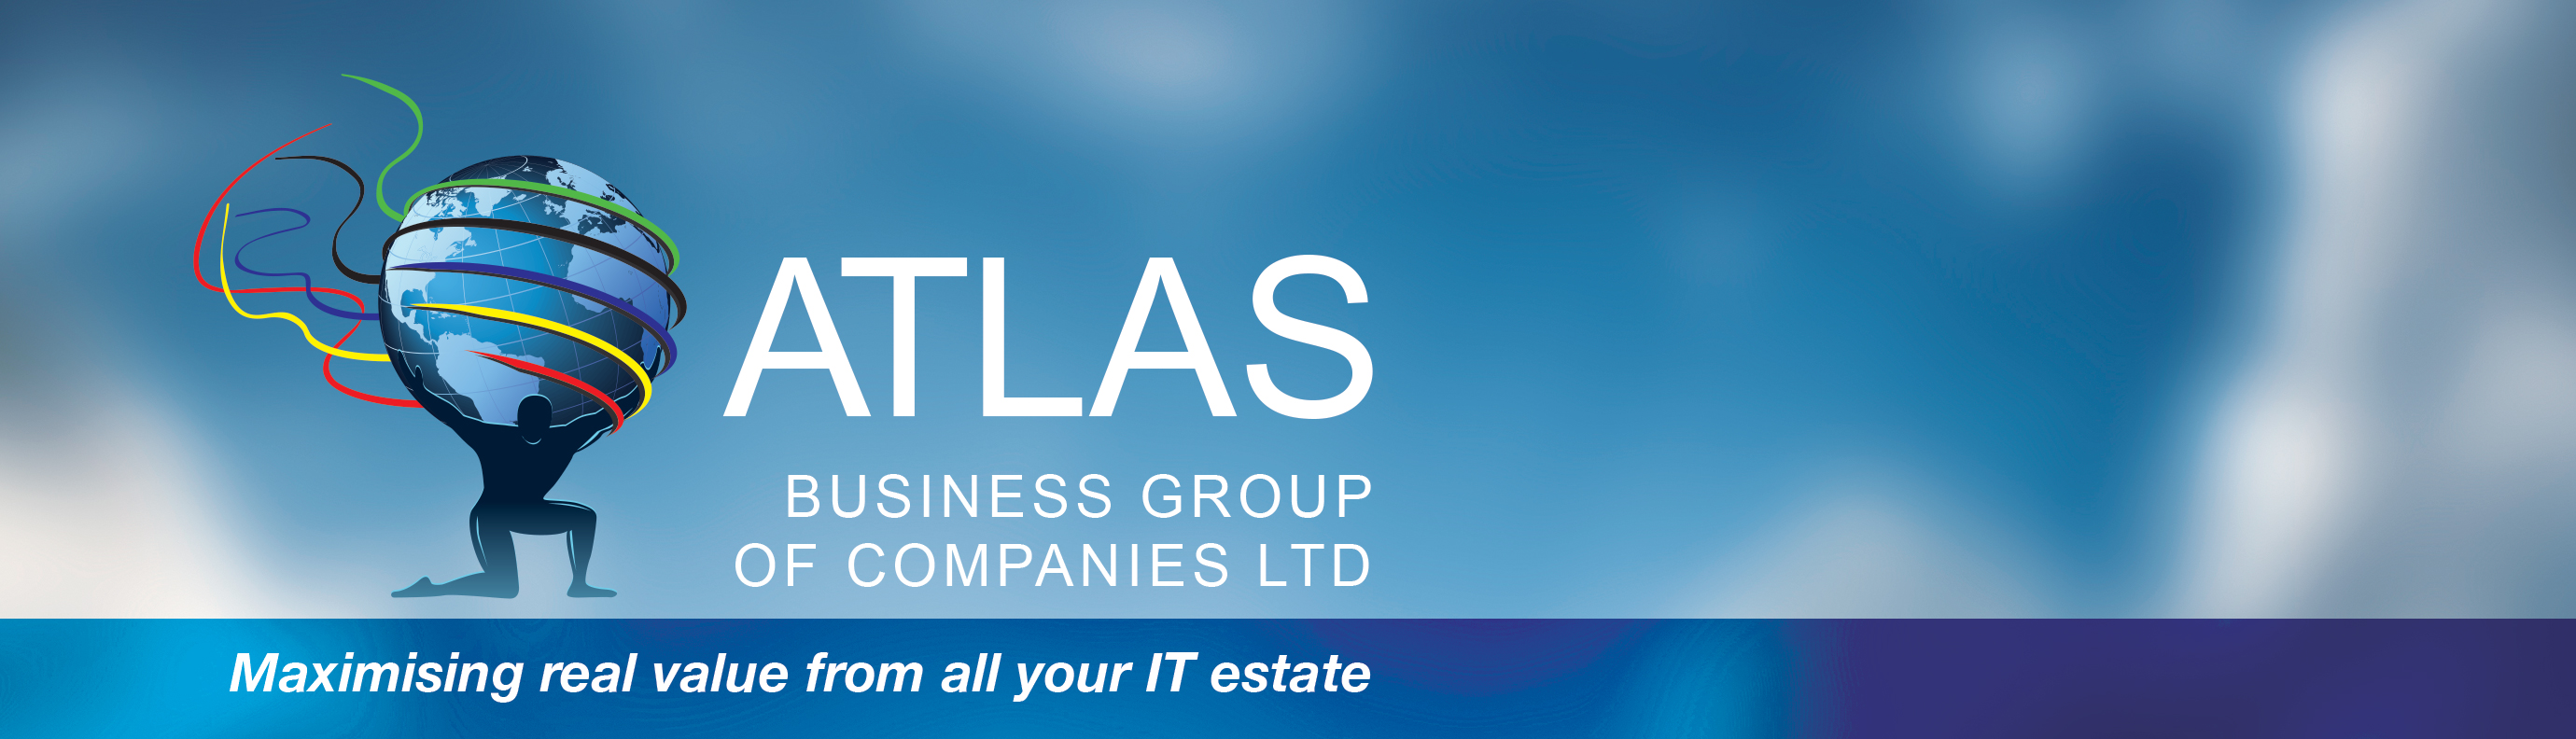 Atlas Business Group of Companies Ltd